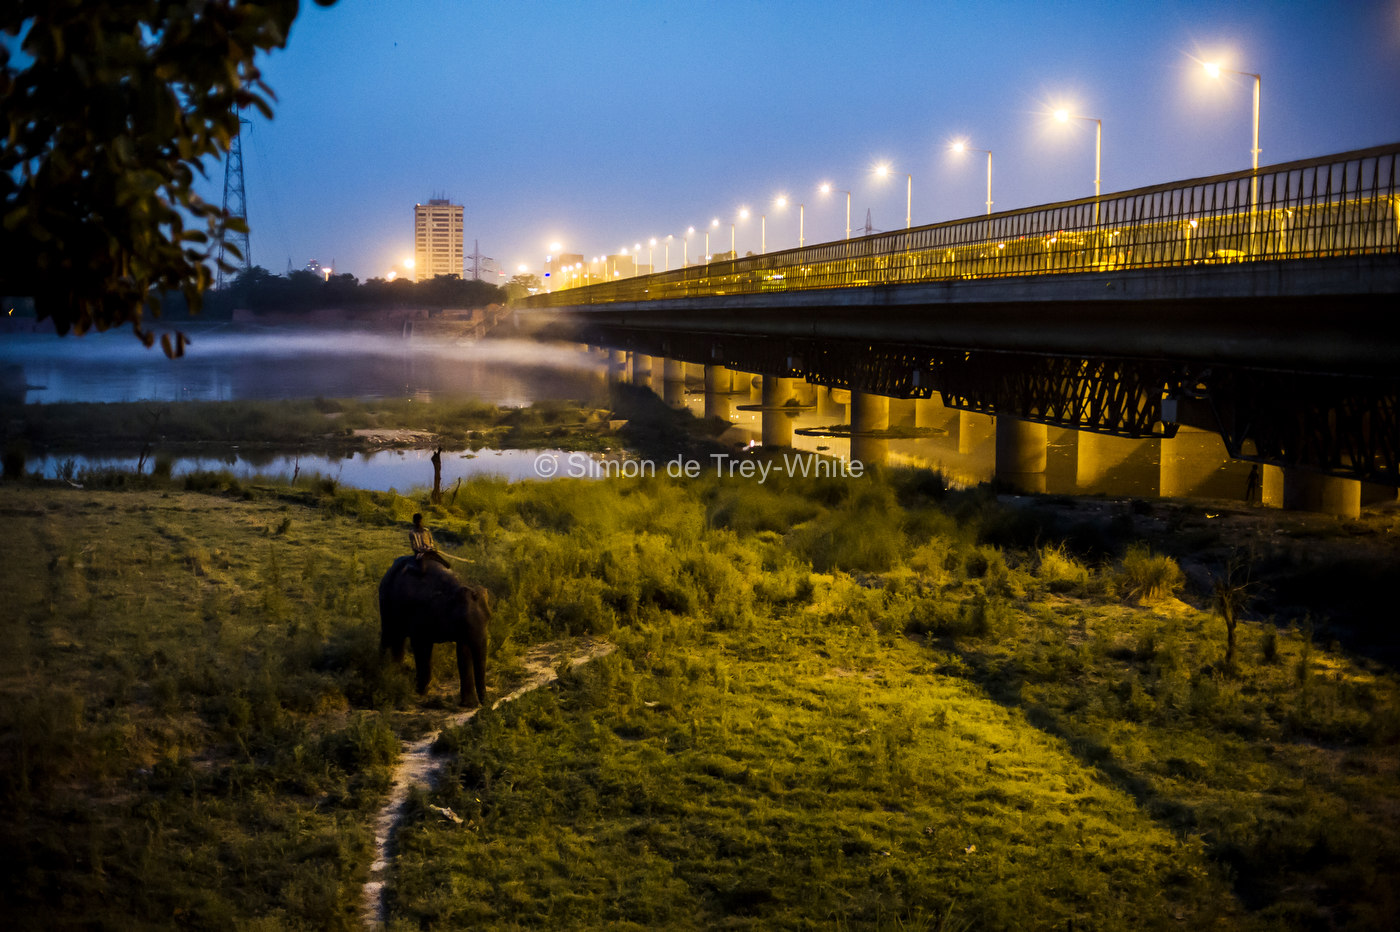 An image form my documentary project 'Delhi's Last Urban Elephant's' as featured on my new website